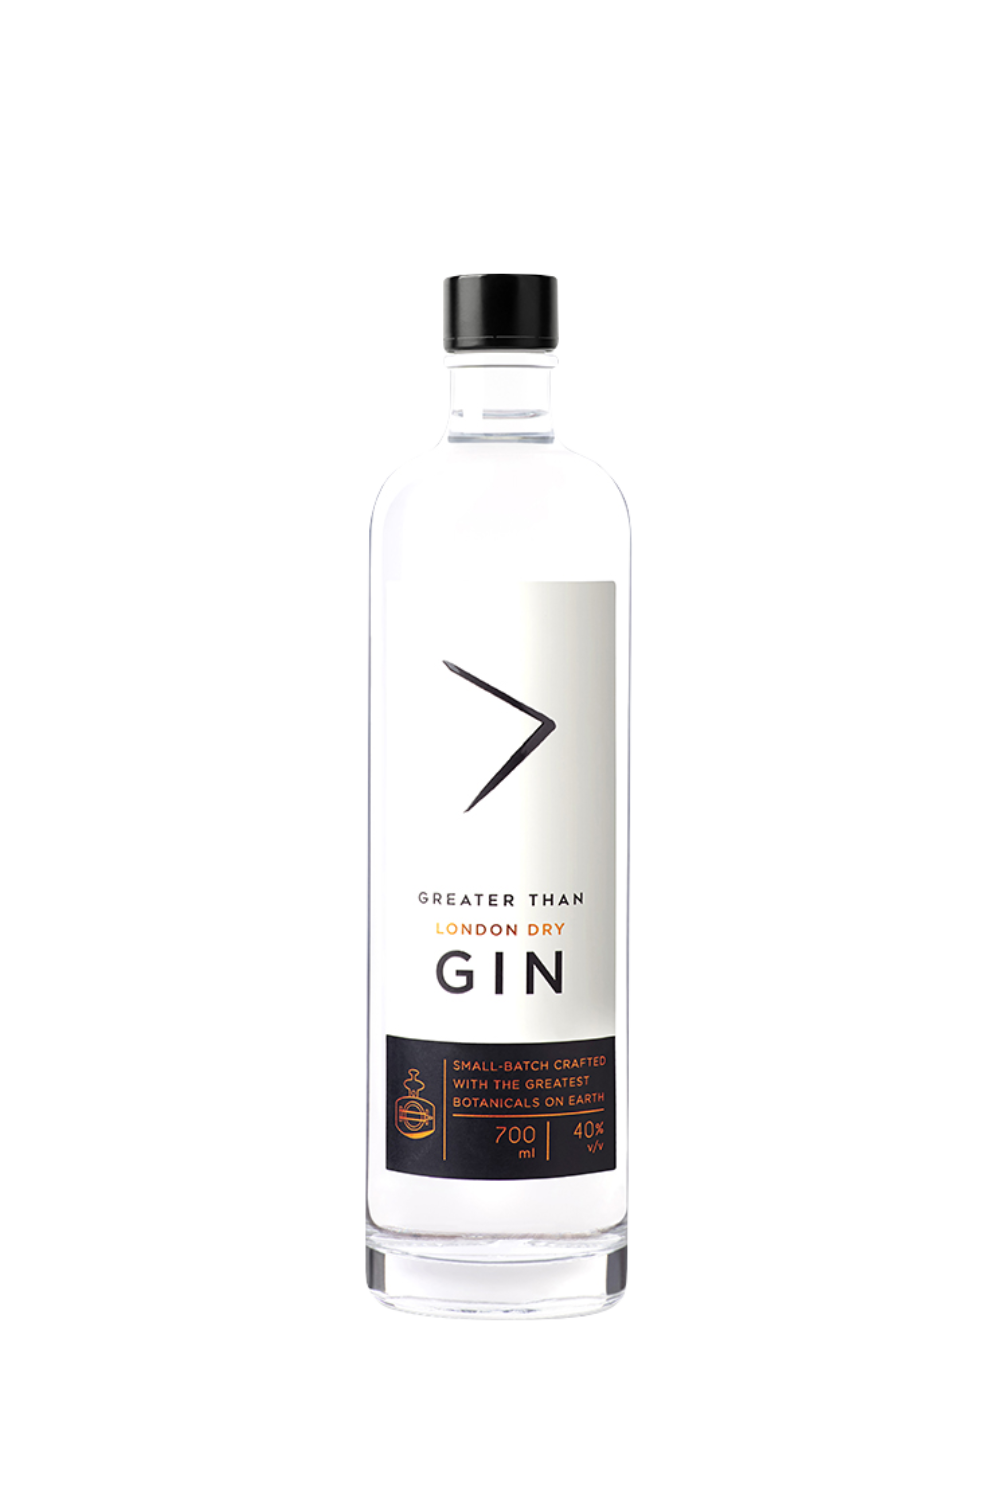 Greater Than London Dry Gin